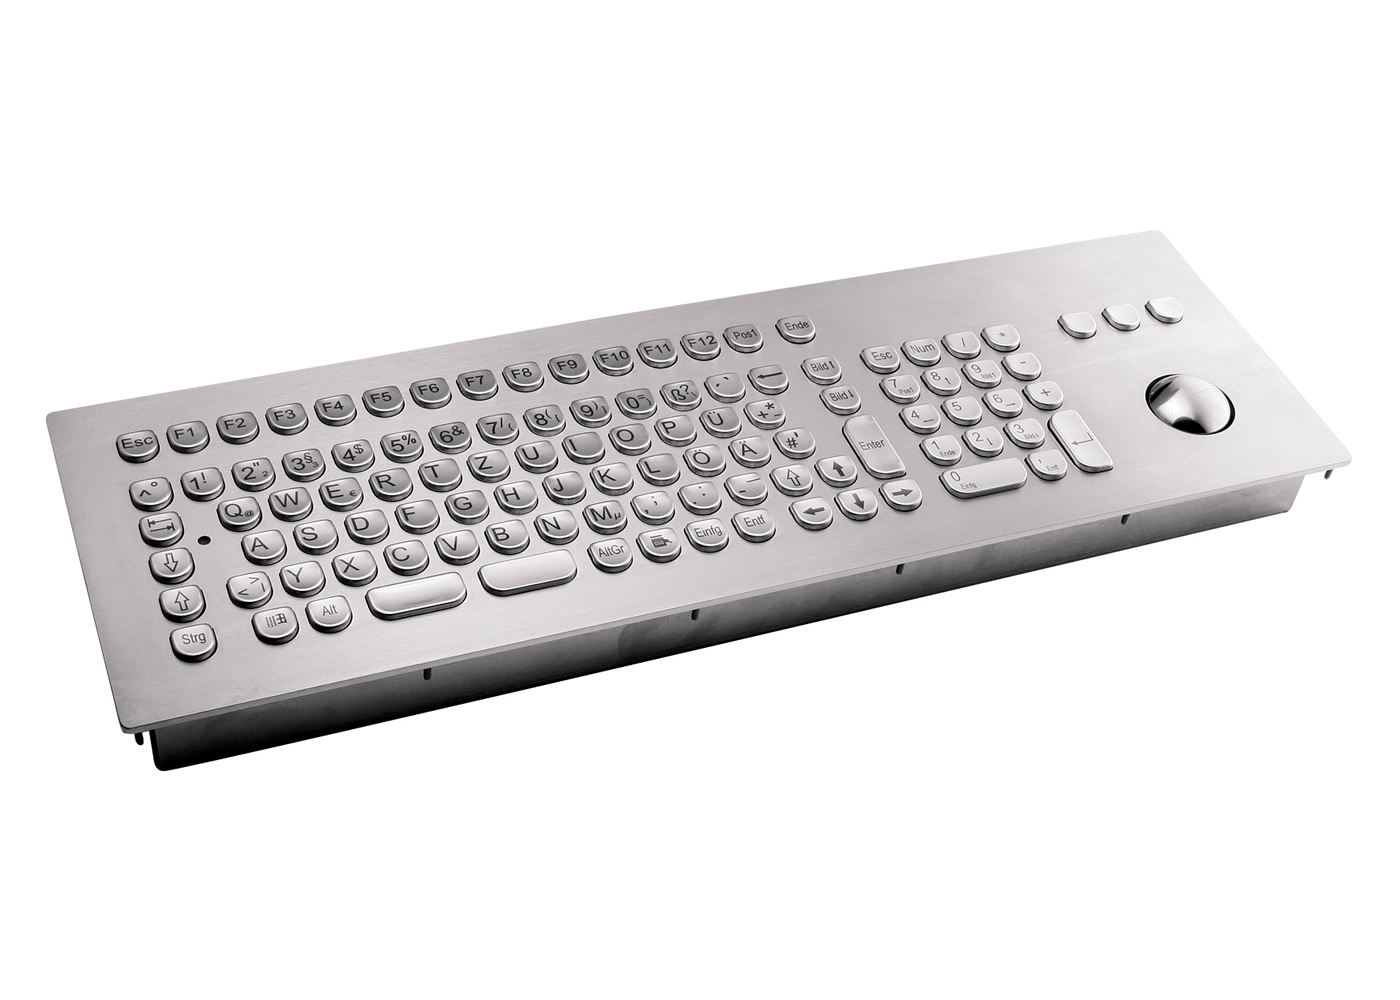 Clavier inox antivandale 105 touches avec trackball 38mm